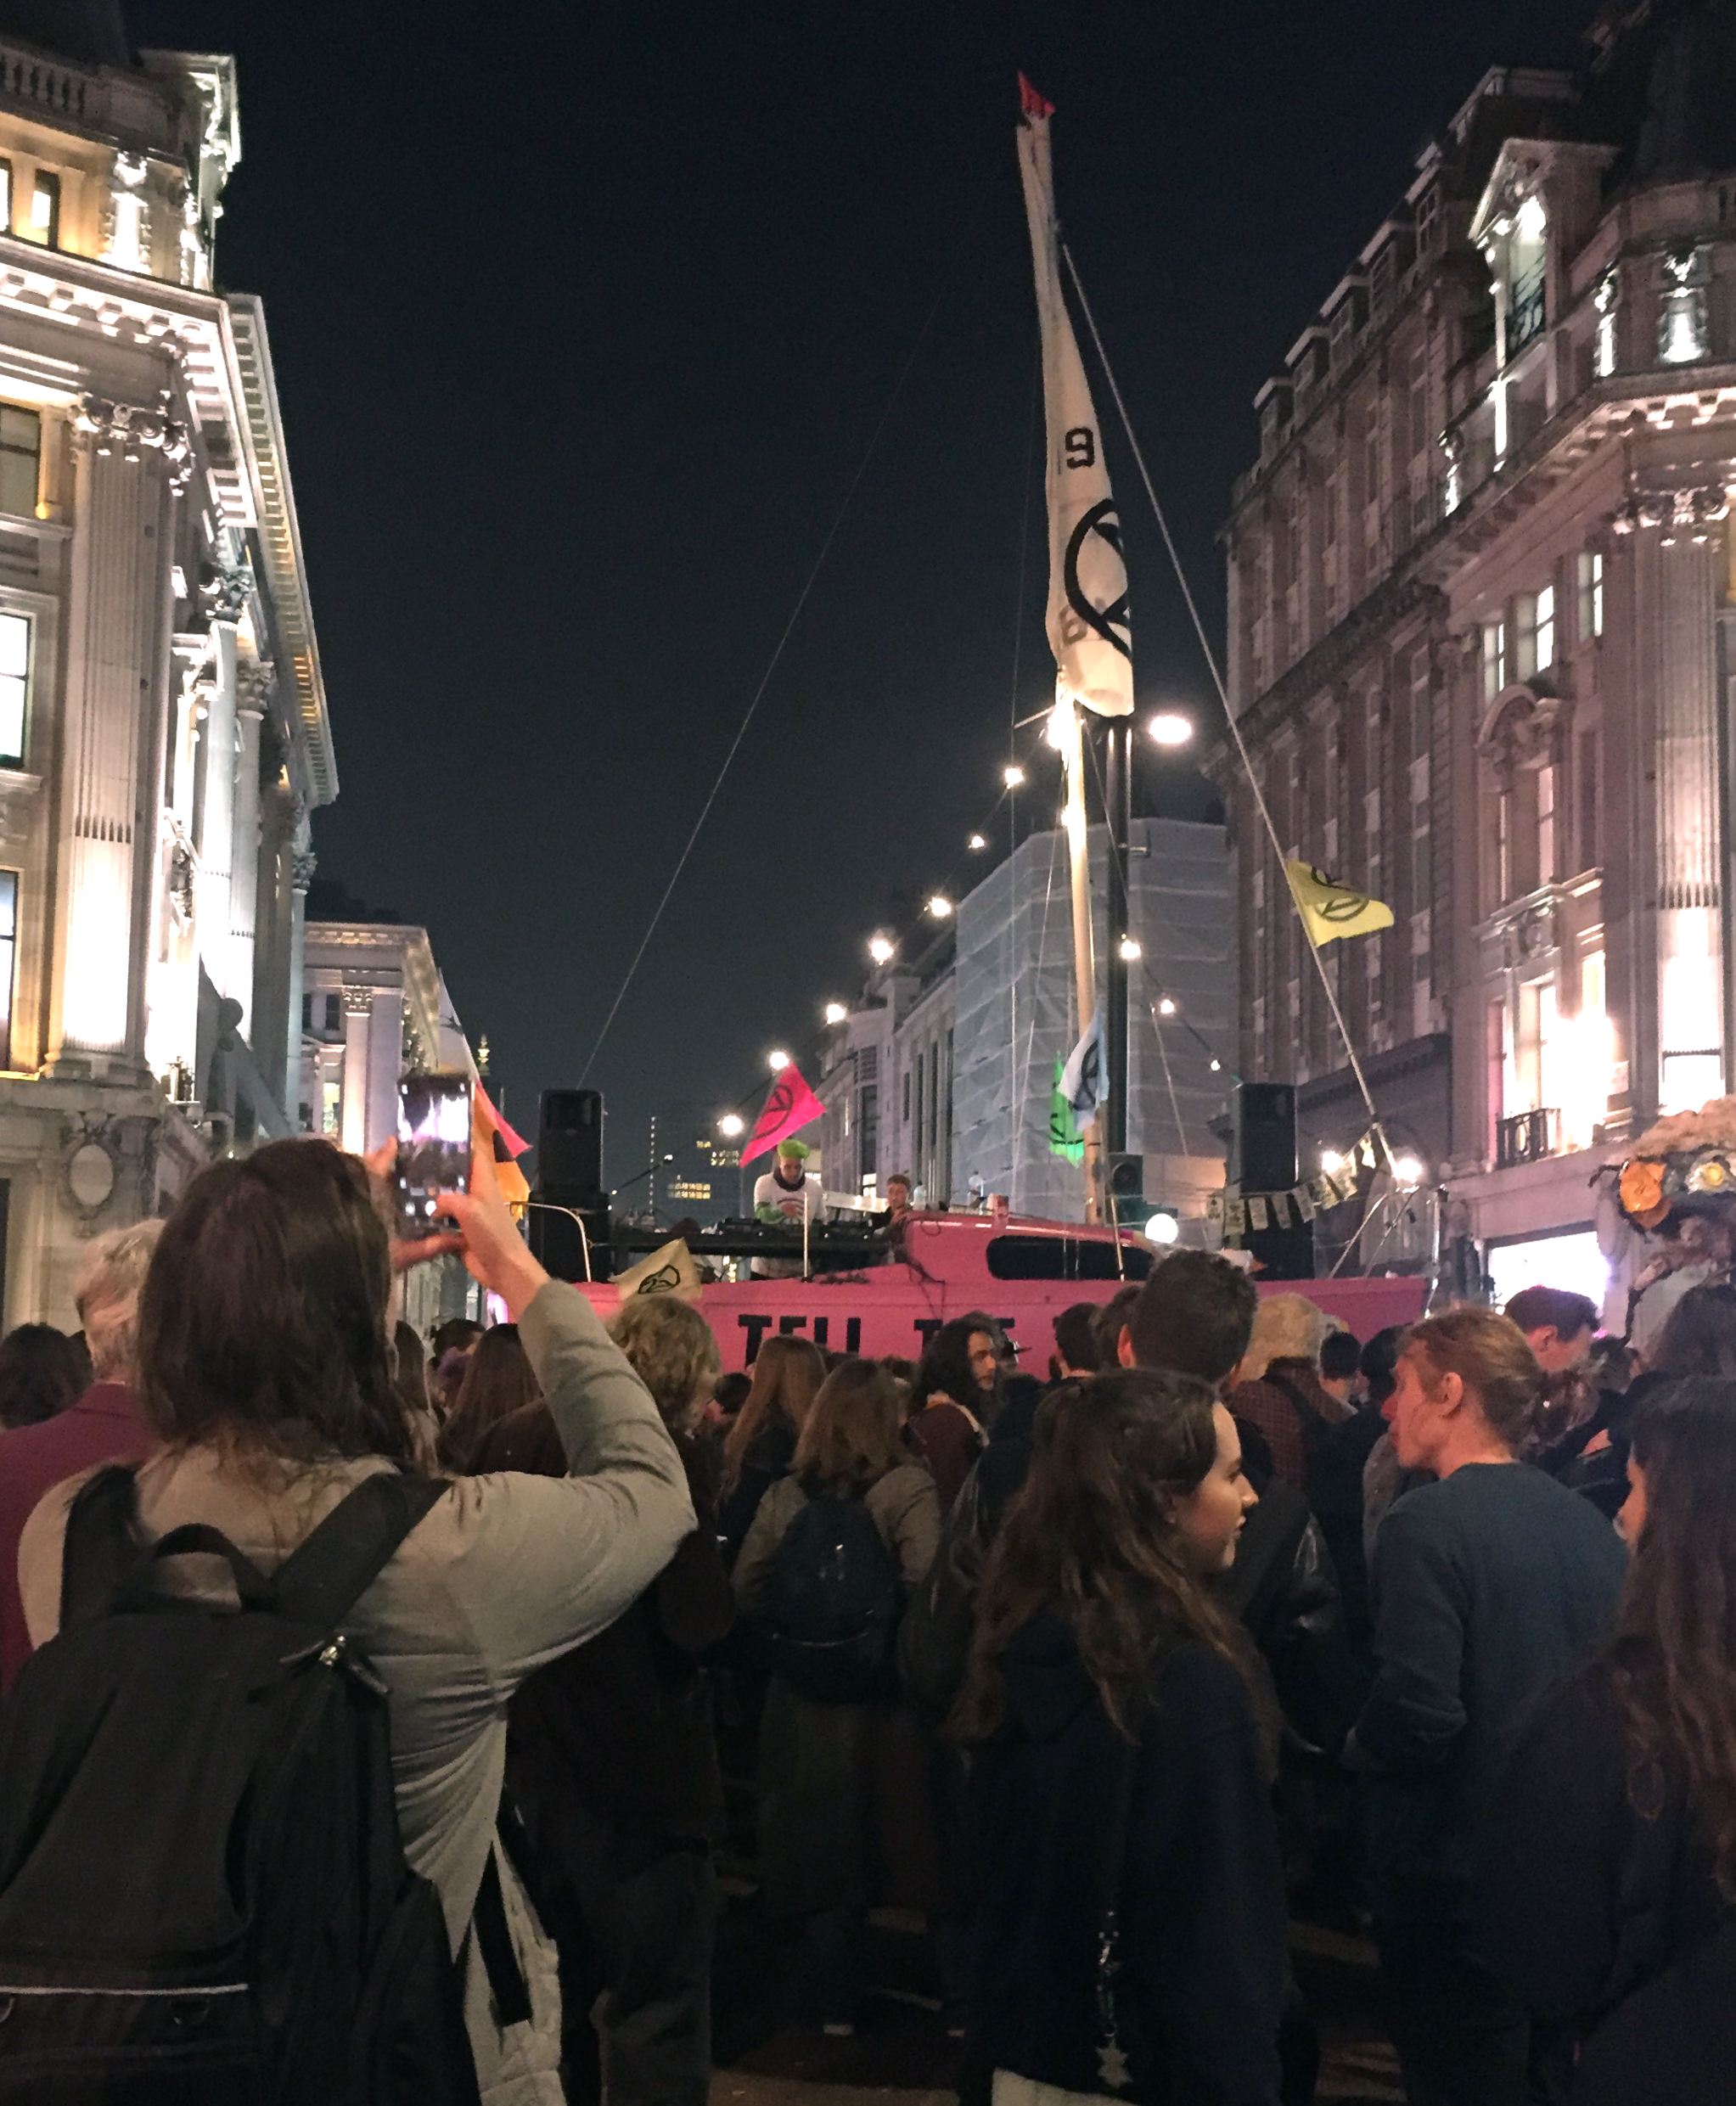 Forget Fabric, Oxford Street makes a brilliant dance club with a DJ booth in a pink sailboat